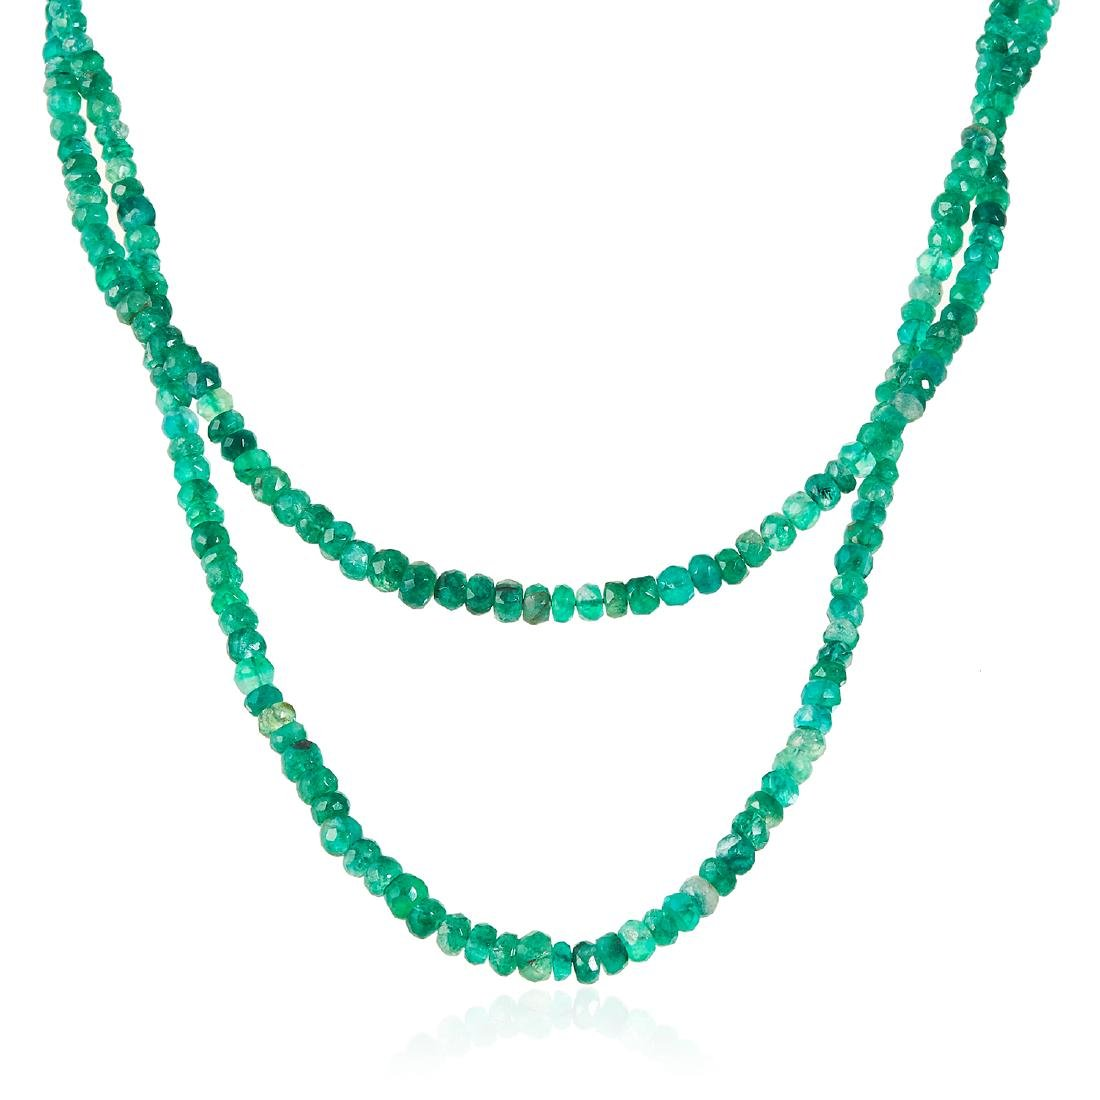 AN ANTIQUE EMERALD, PEARL AND DIAMOND NECKLACE in